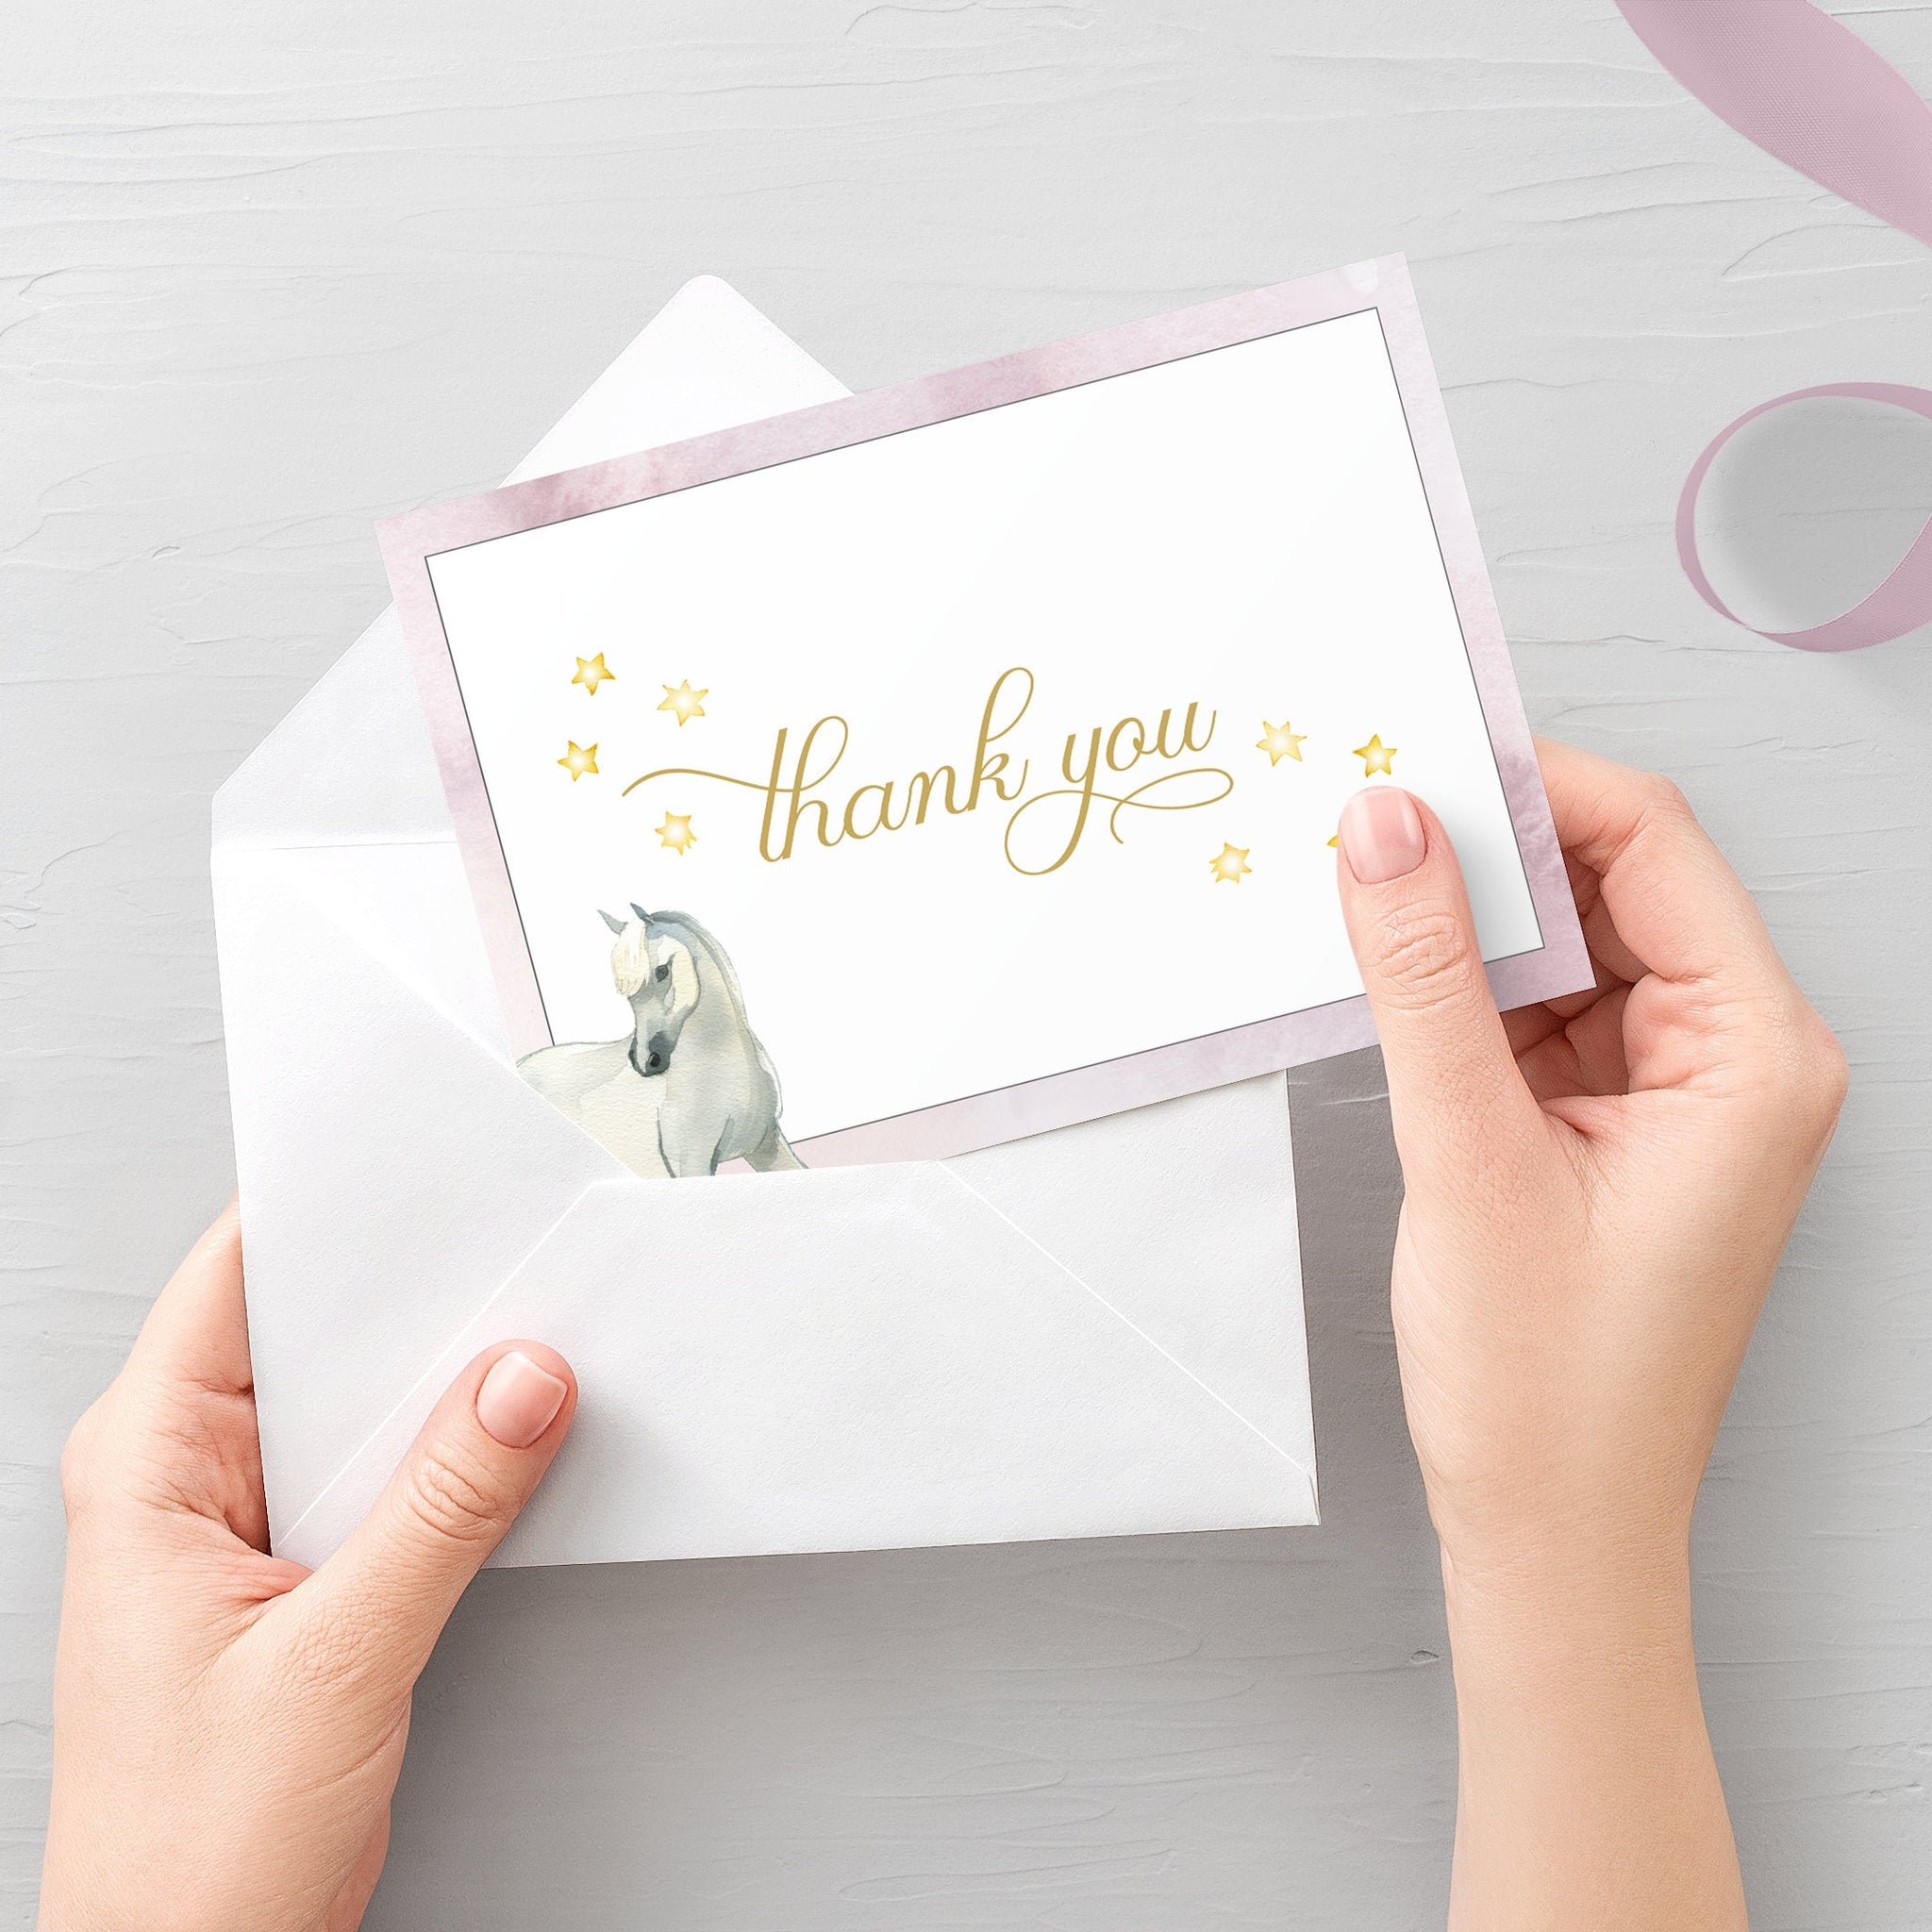 Horse Thank You Card Printable, Horse Thank You Note, Folded and Flat Cards 5X3.5, Editable Template DIGITAL DOWNLOAD - CS100 - @PlumPolkaDot